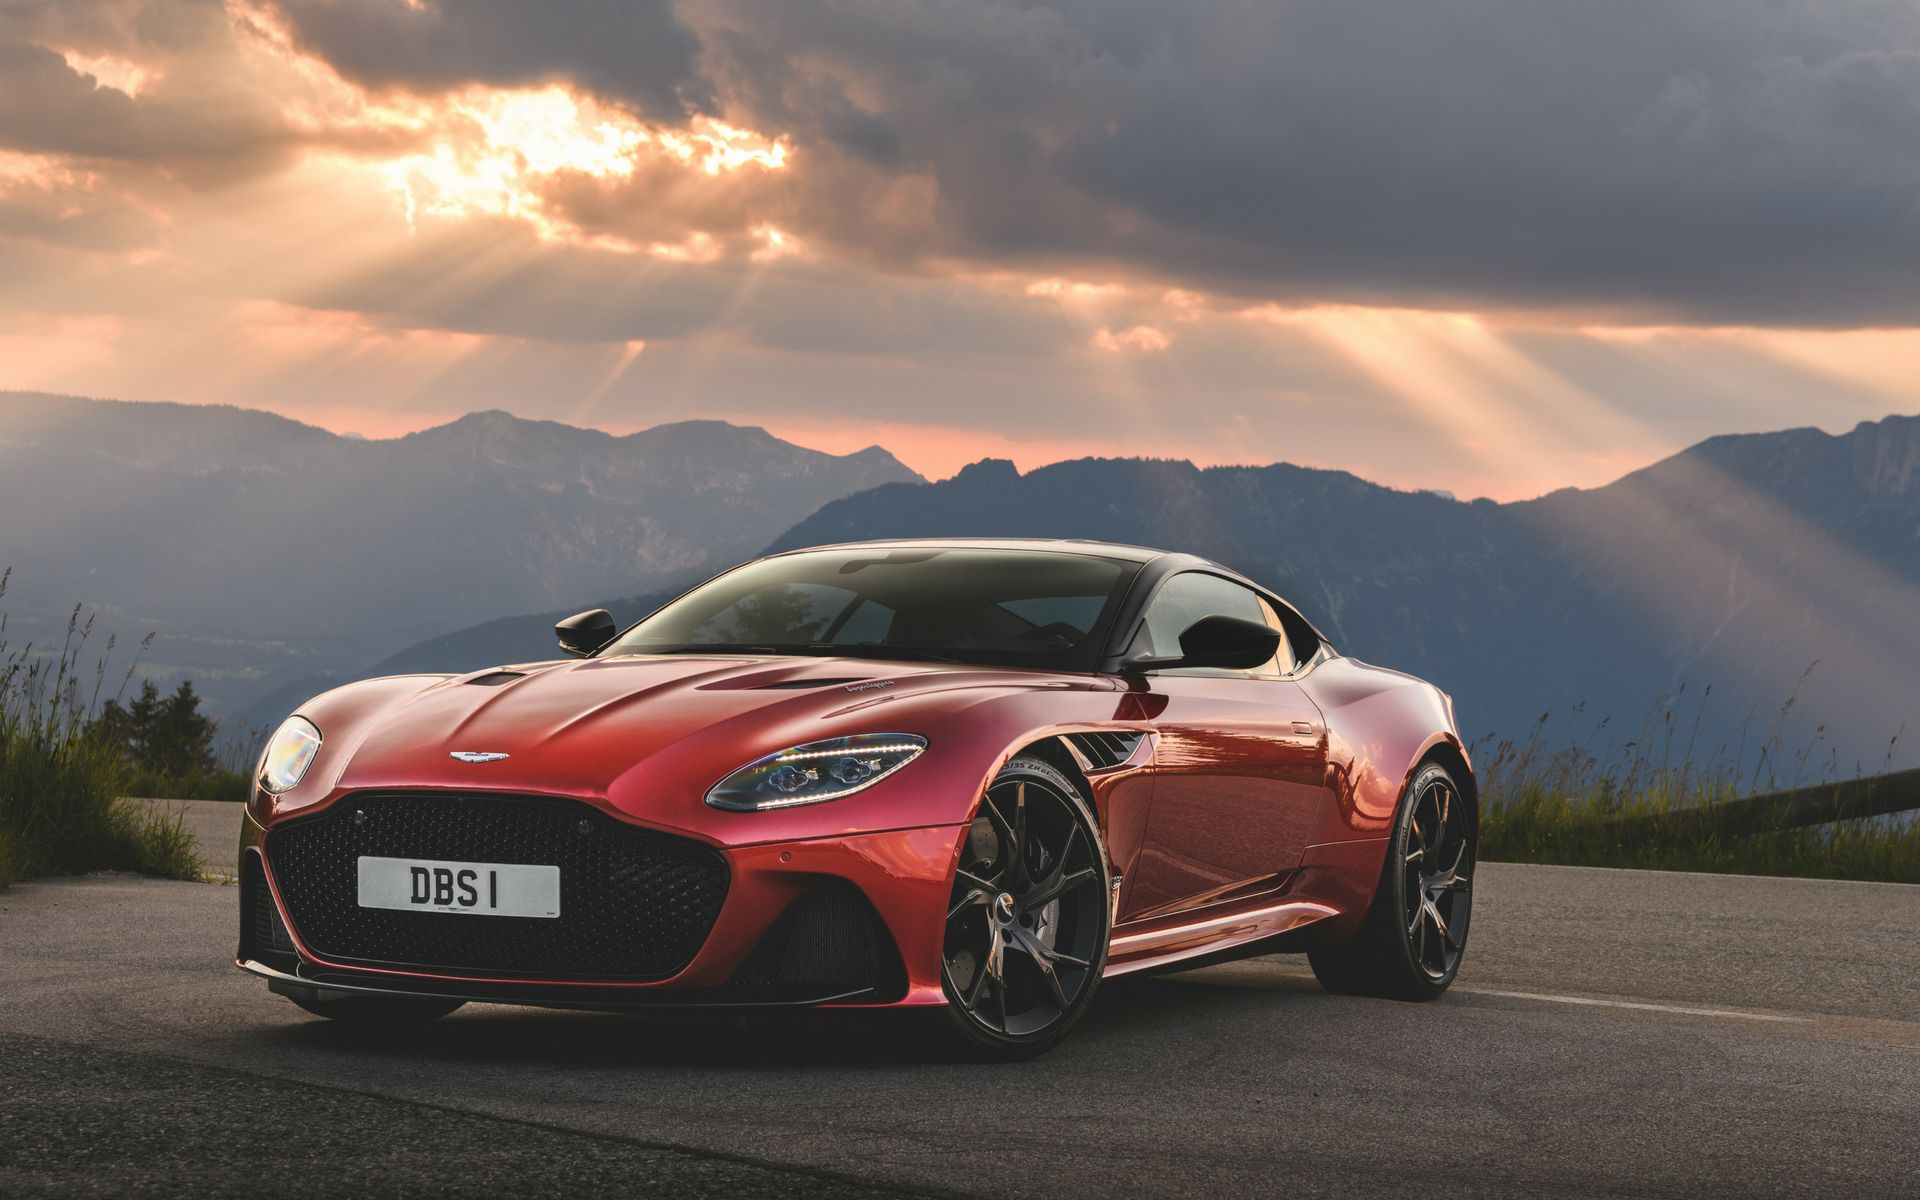 5 Reasons The Aston Martin DBS Superleggera Should Be In Your Service